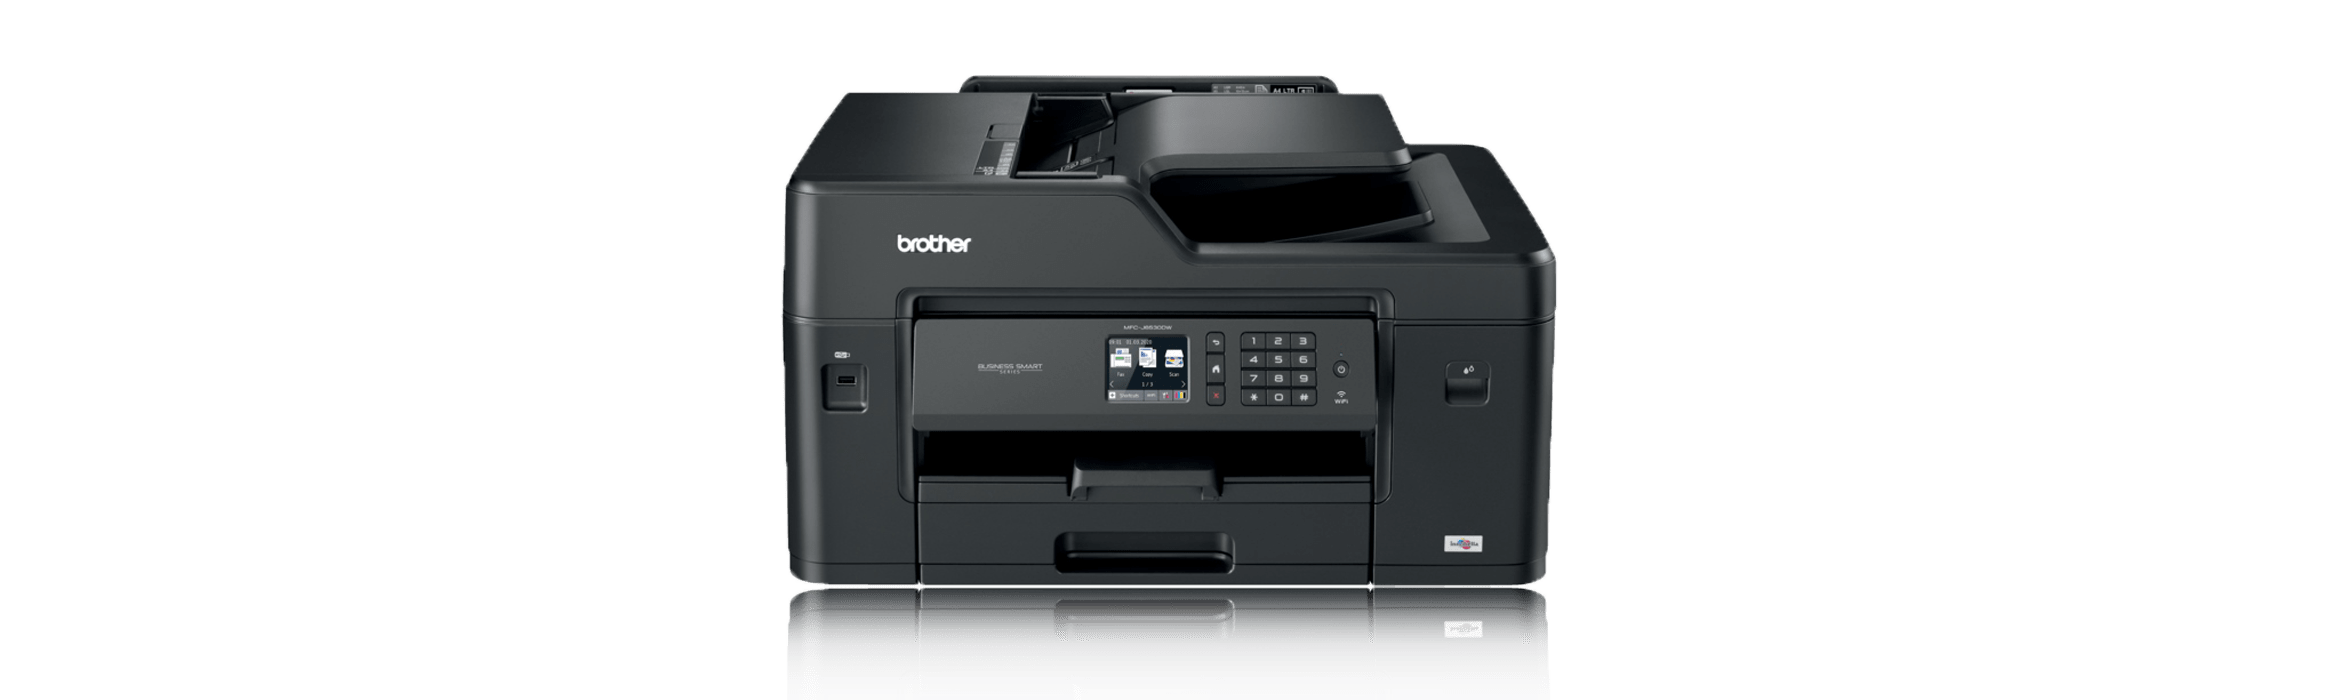 Image shows Brother MFC-J6530DW A3 Inkjet Printer on promotion